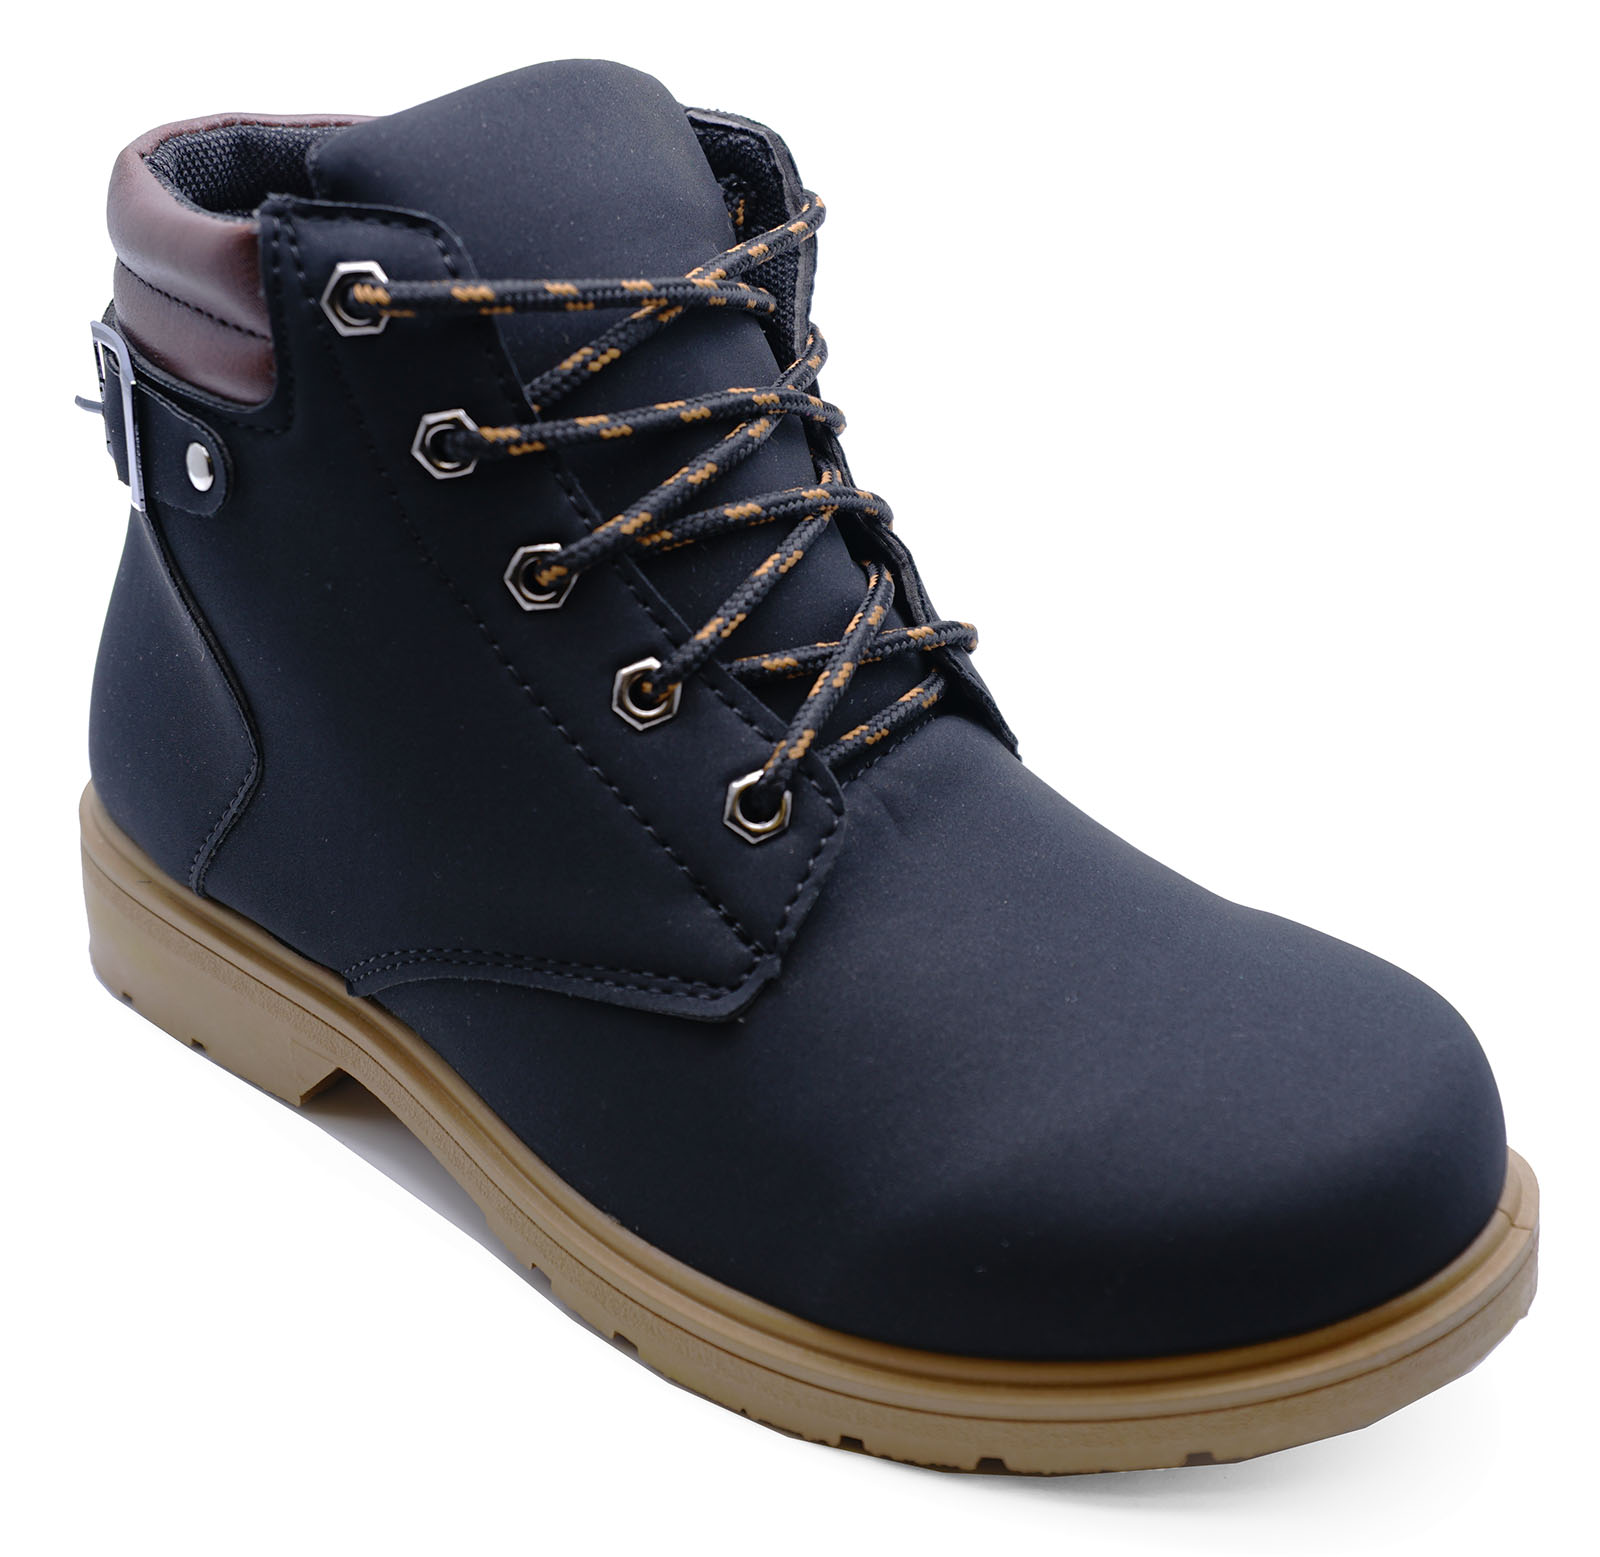 af4888fdfff Details about LADIES BLACK LACE-UP DESERT COMFY CASUAL HIKING TRAIL ANKLE  BOOTS SHOES SIZE 3-7